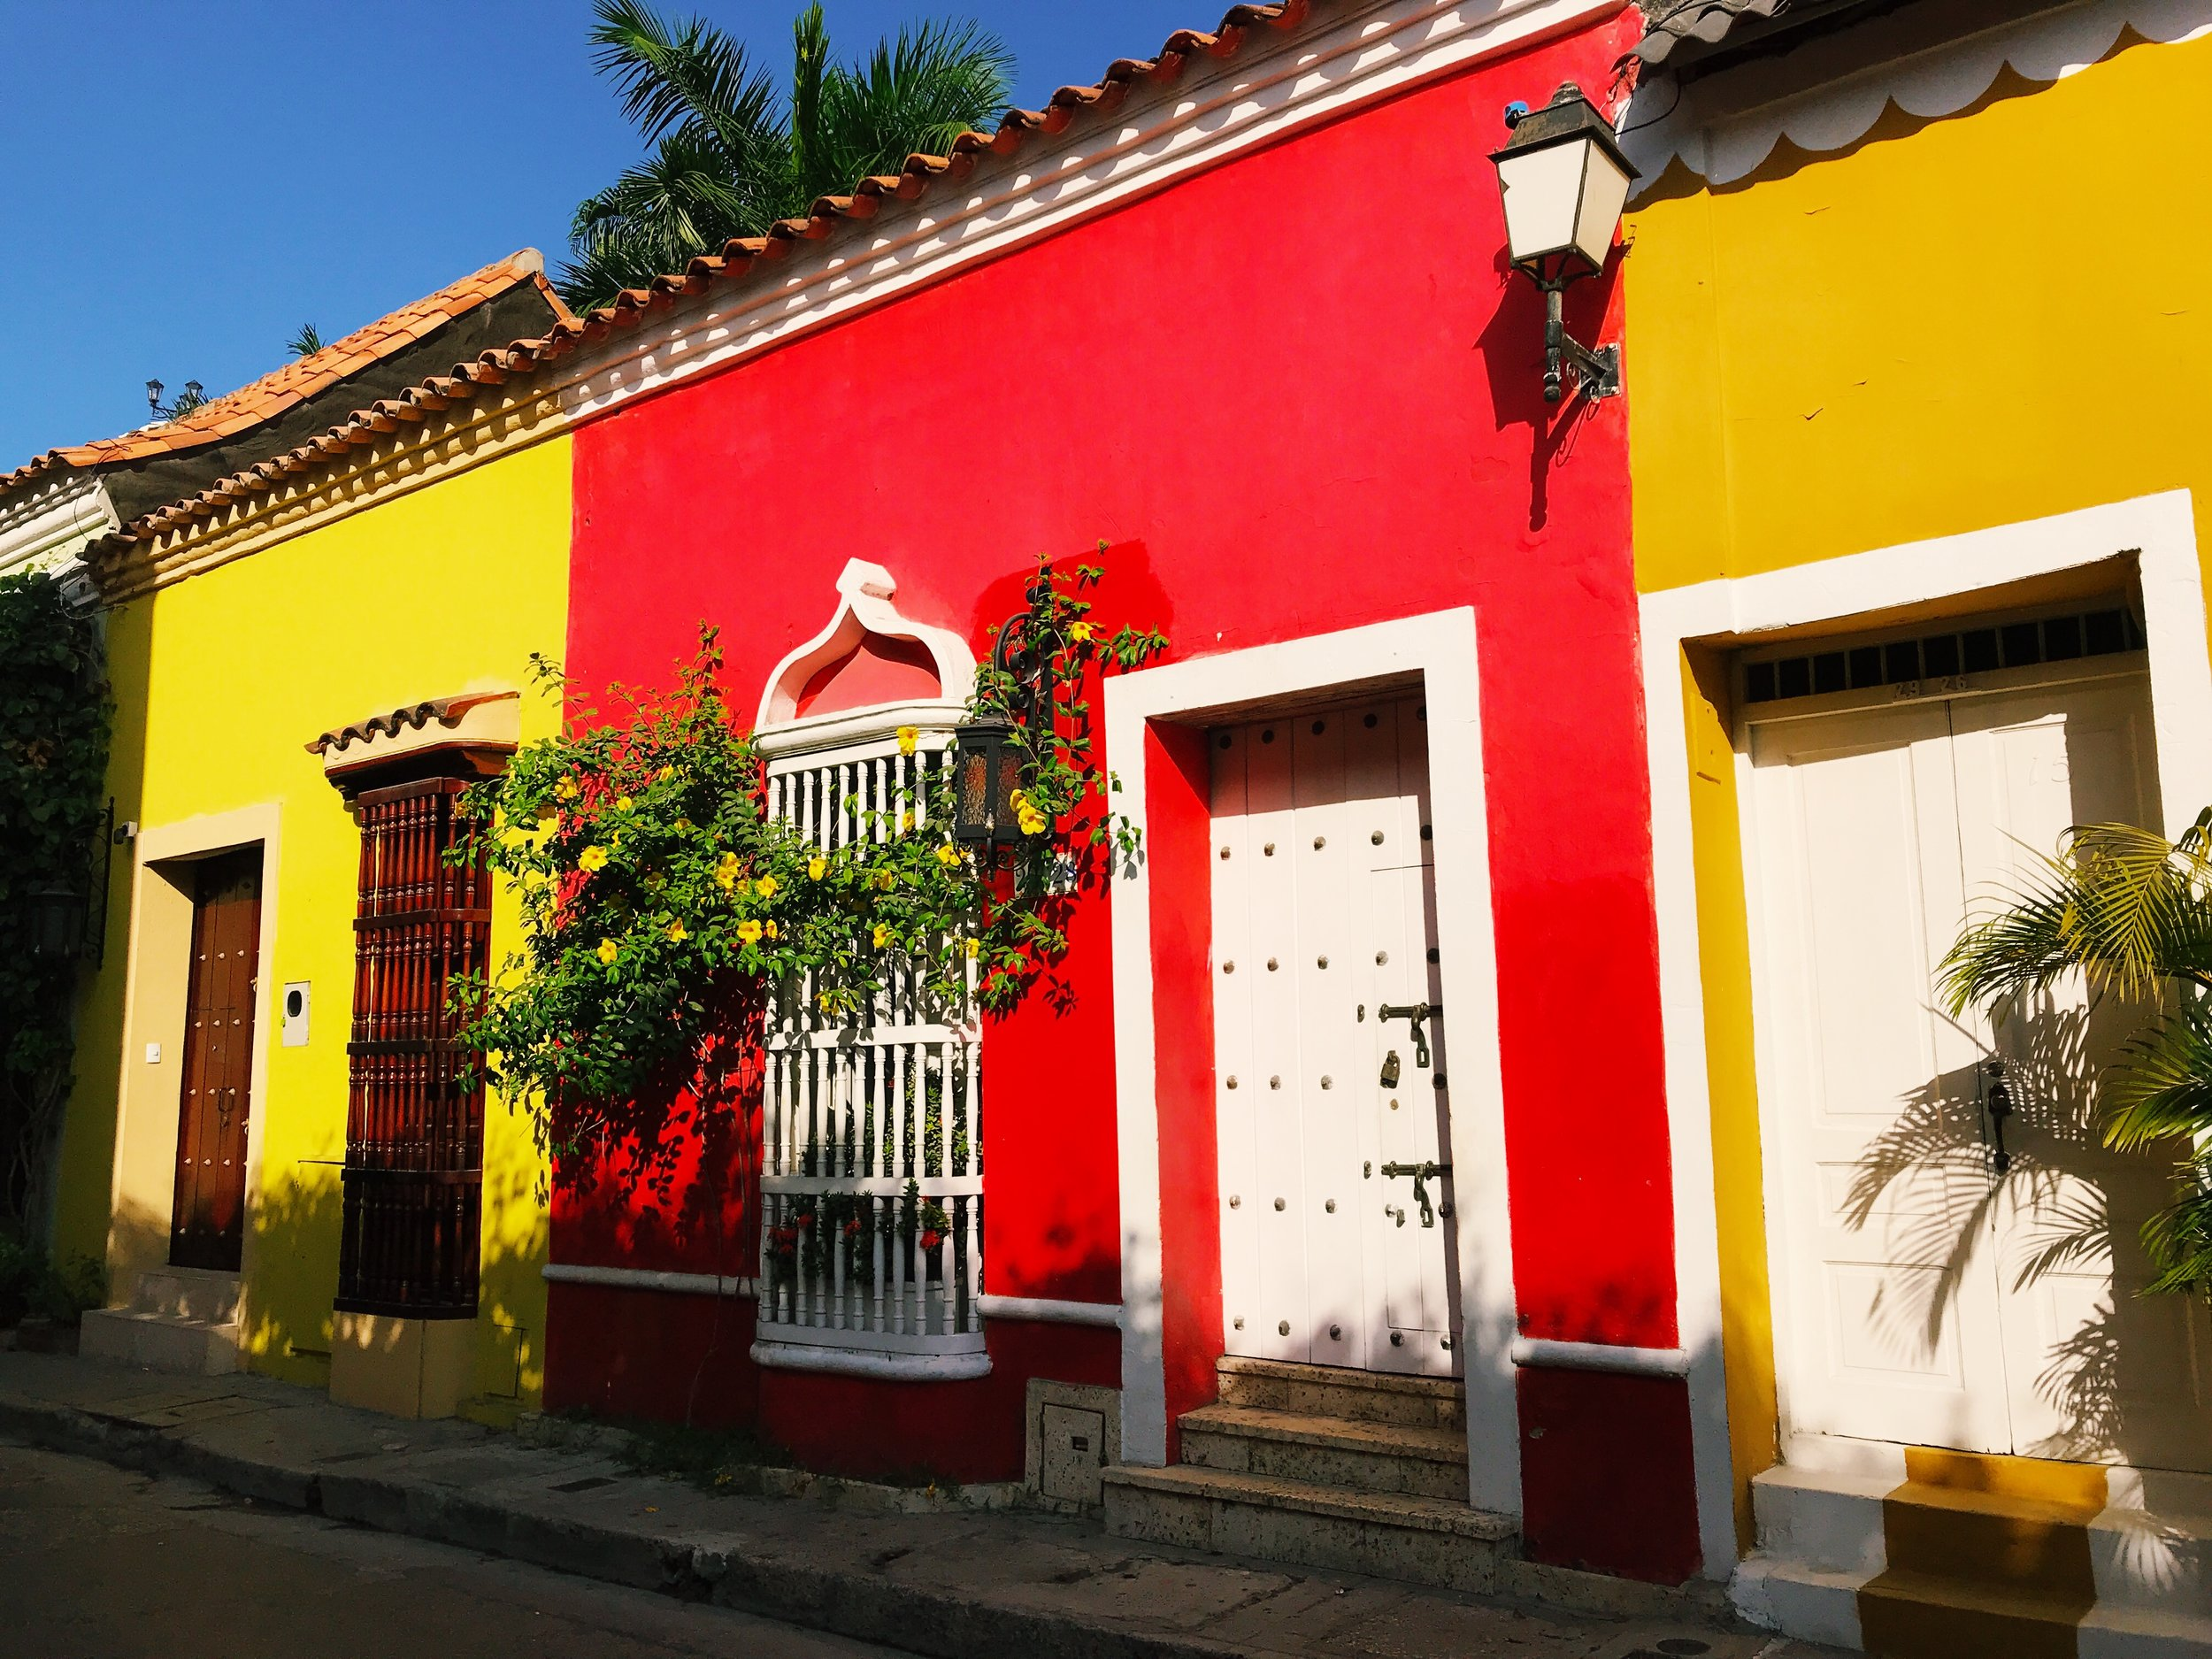 Never want to experience winter again? Go to Cartagena, Colombia.